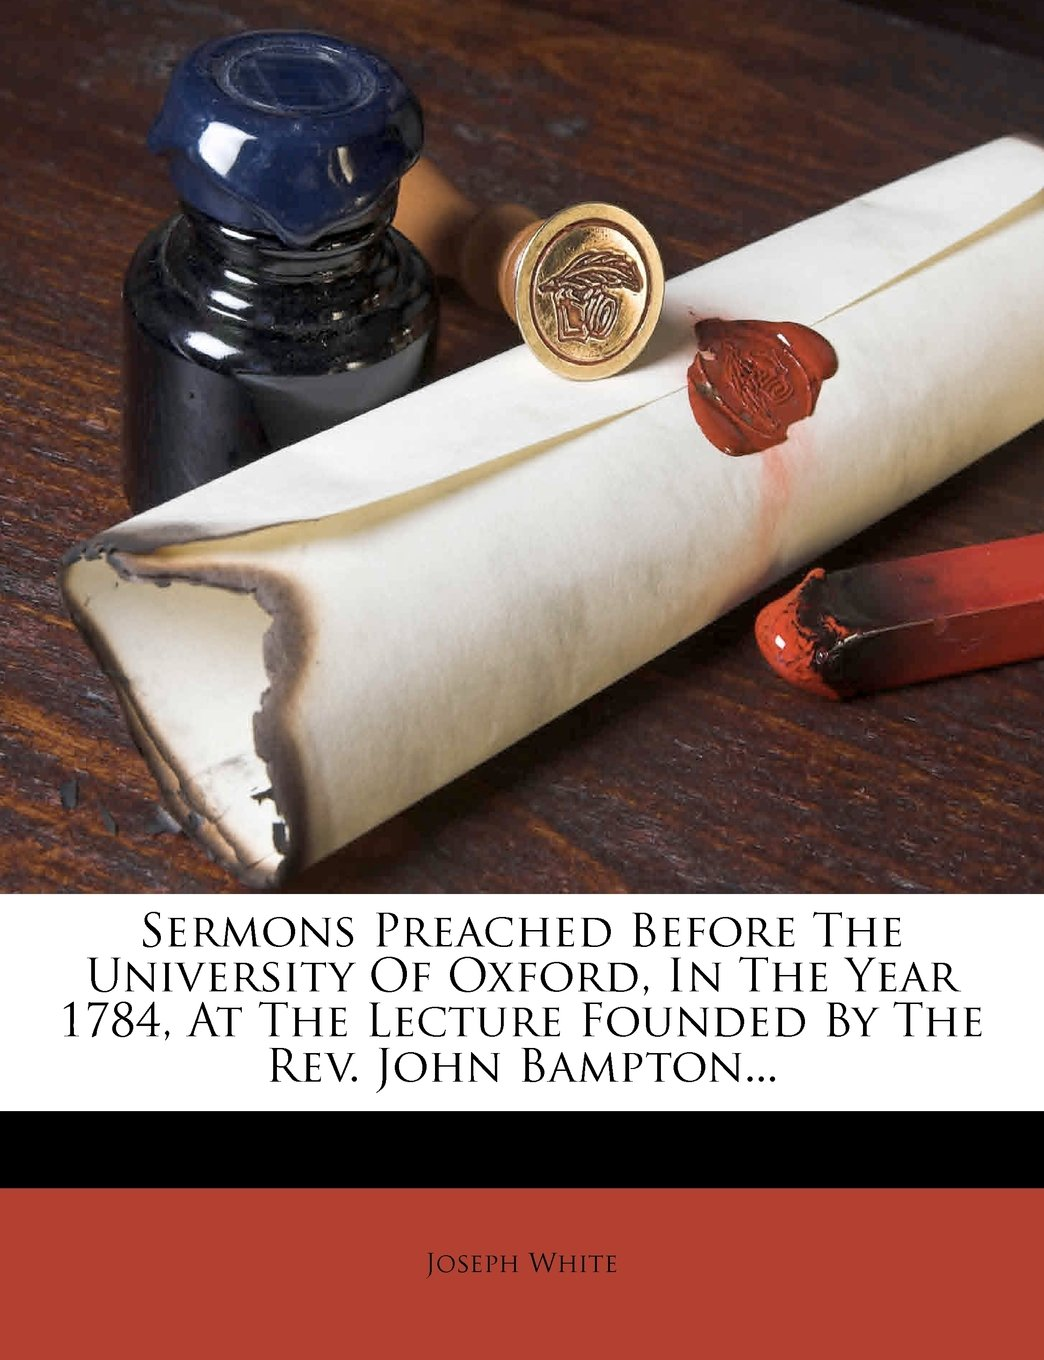 Read Online Sermons Preached Before The University Of Oxford, In The Year 1784, At The Lecture Founded By The Rev. John Bampton... pdf epub